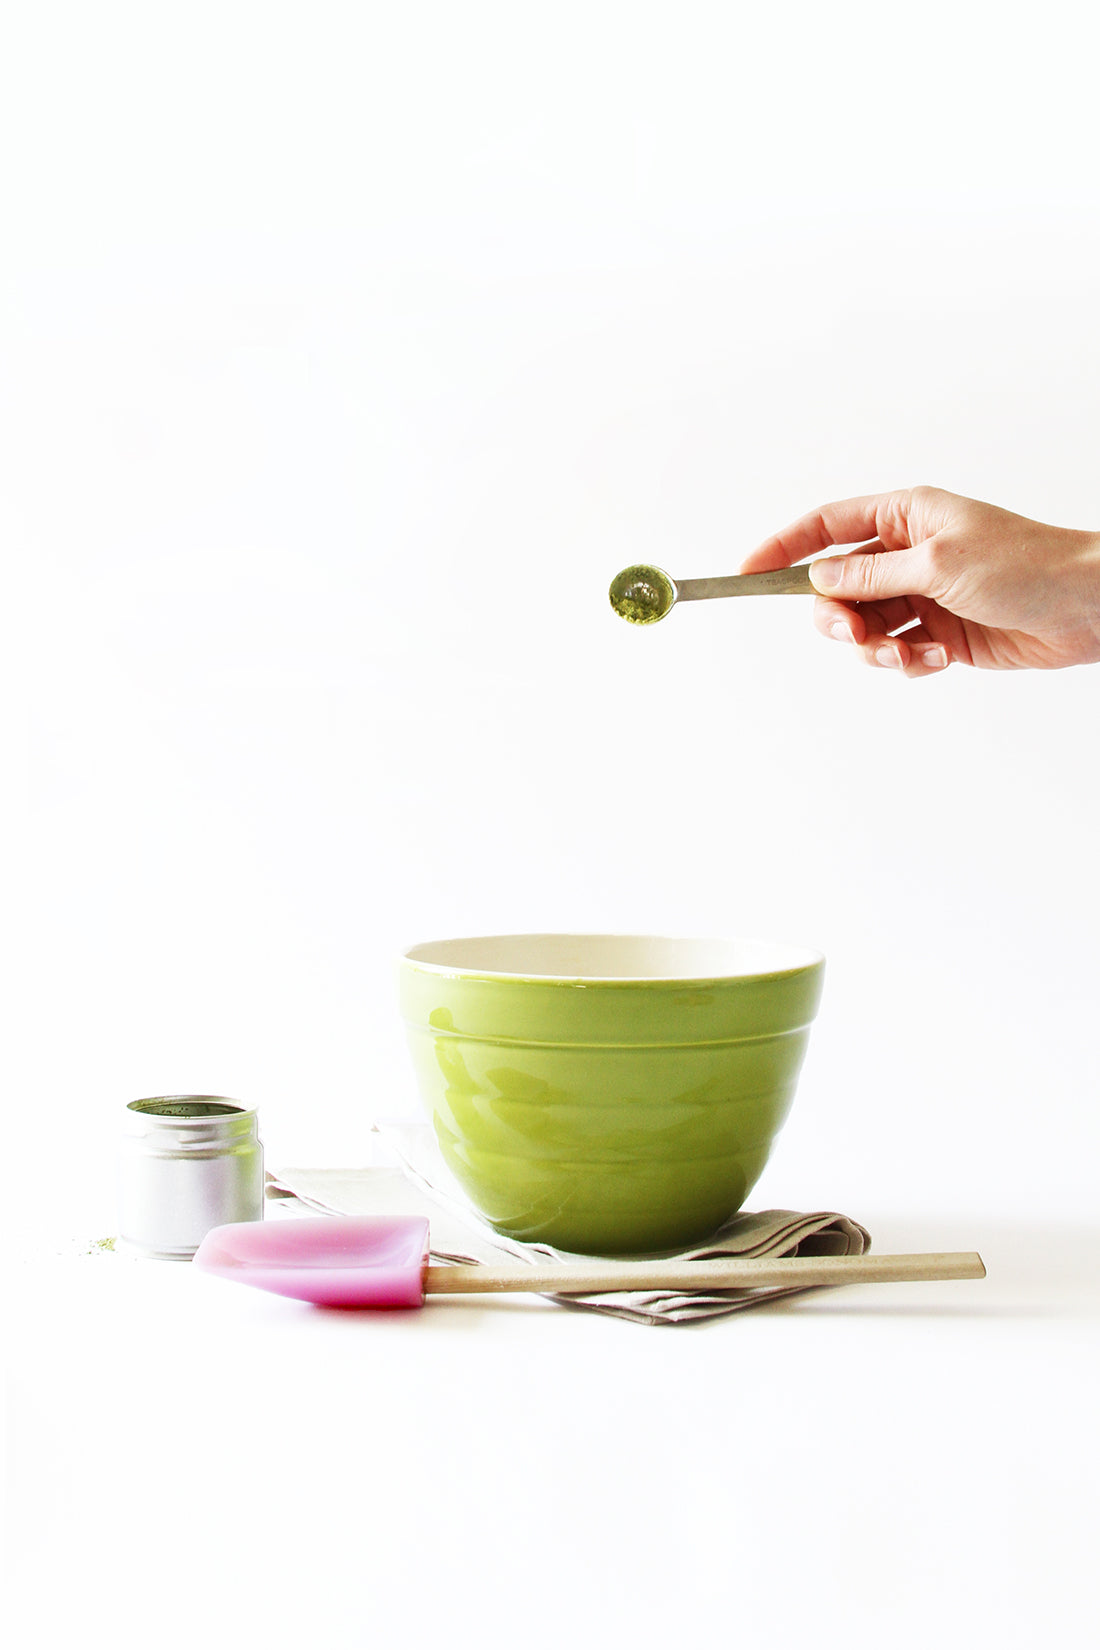 Image from the side of a spoon of matcha poured into a green mixing bowl next to a jar of powdered matcha and a purple spatula for Miss Jones Baking Co Matcha Tea Cakes